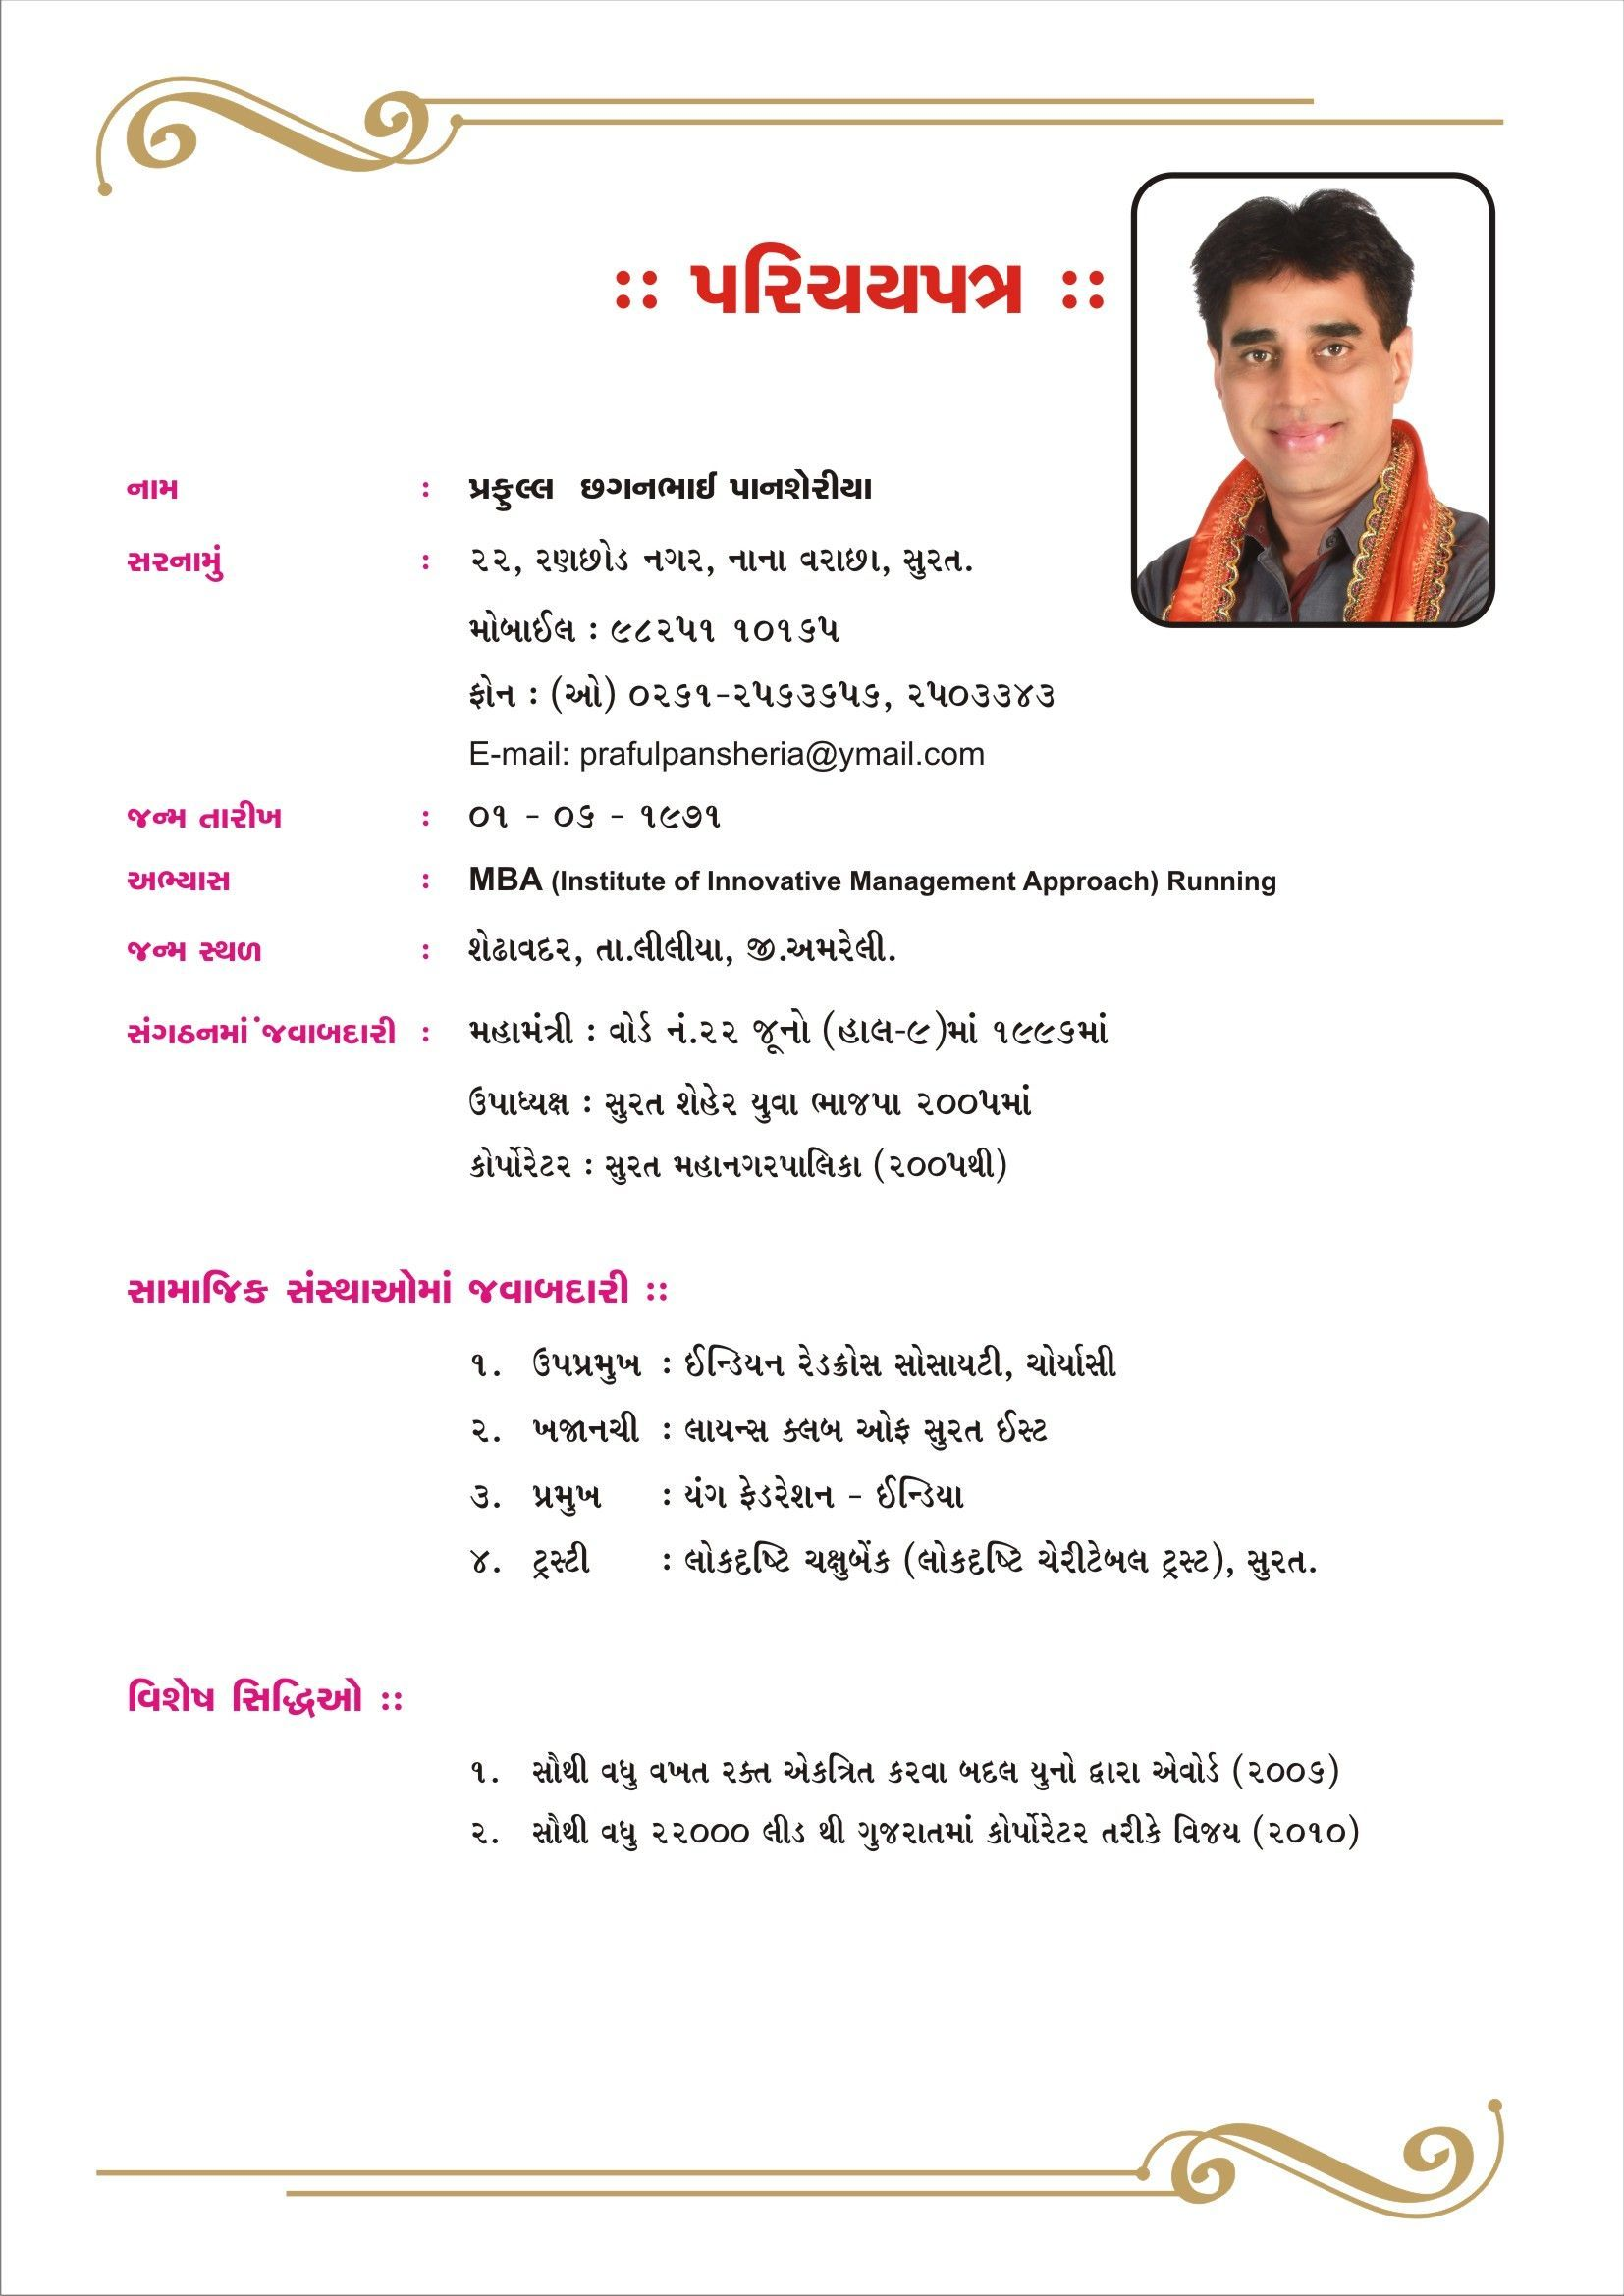 Resume Format Jpg Bio data for marriage, Marriage